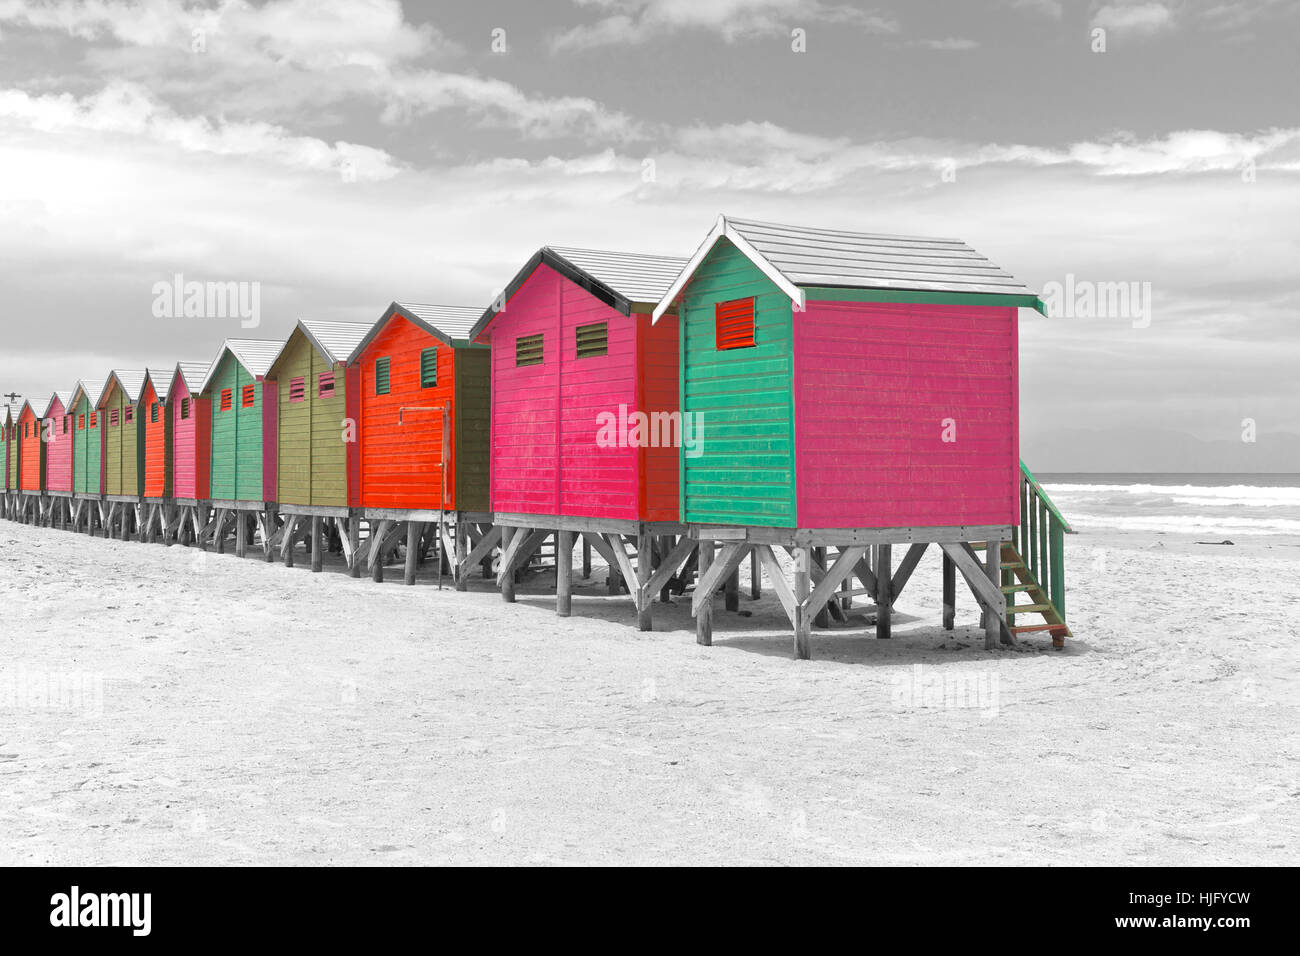 Row of painted beach huts in Cape Town, South Africa Stock Photo